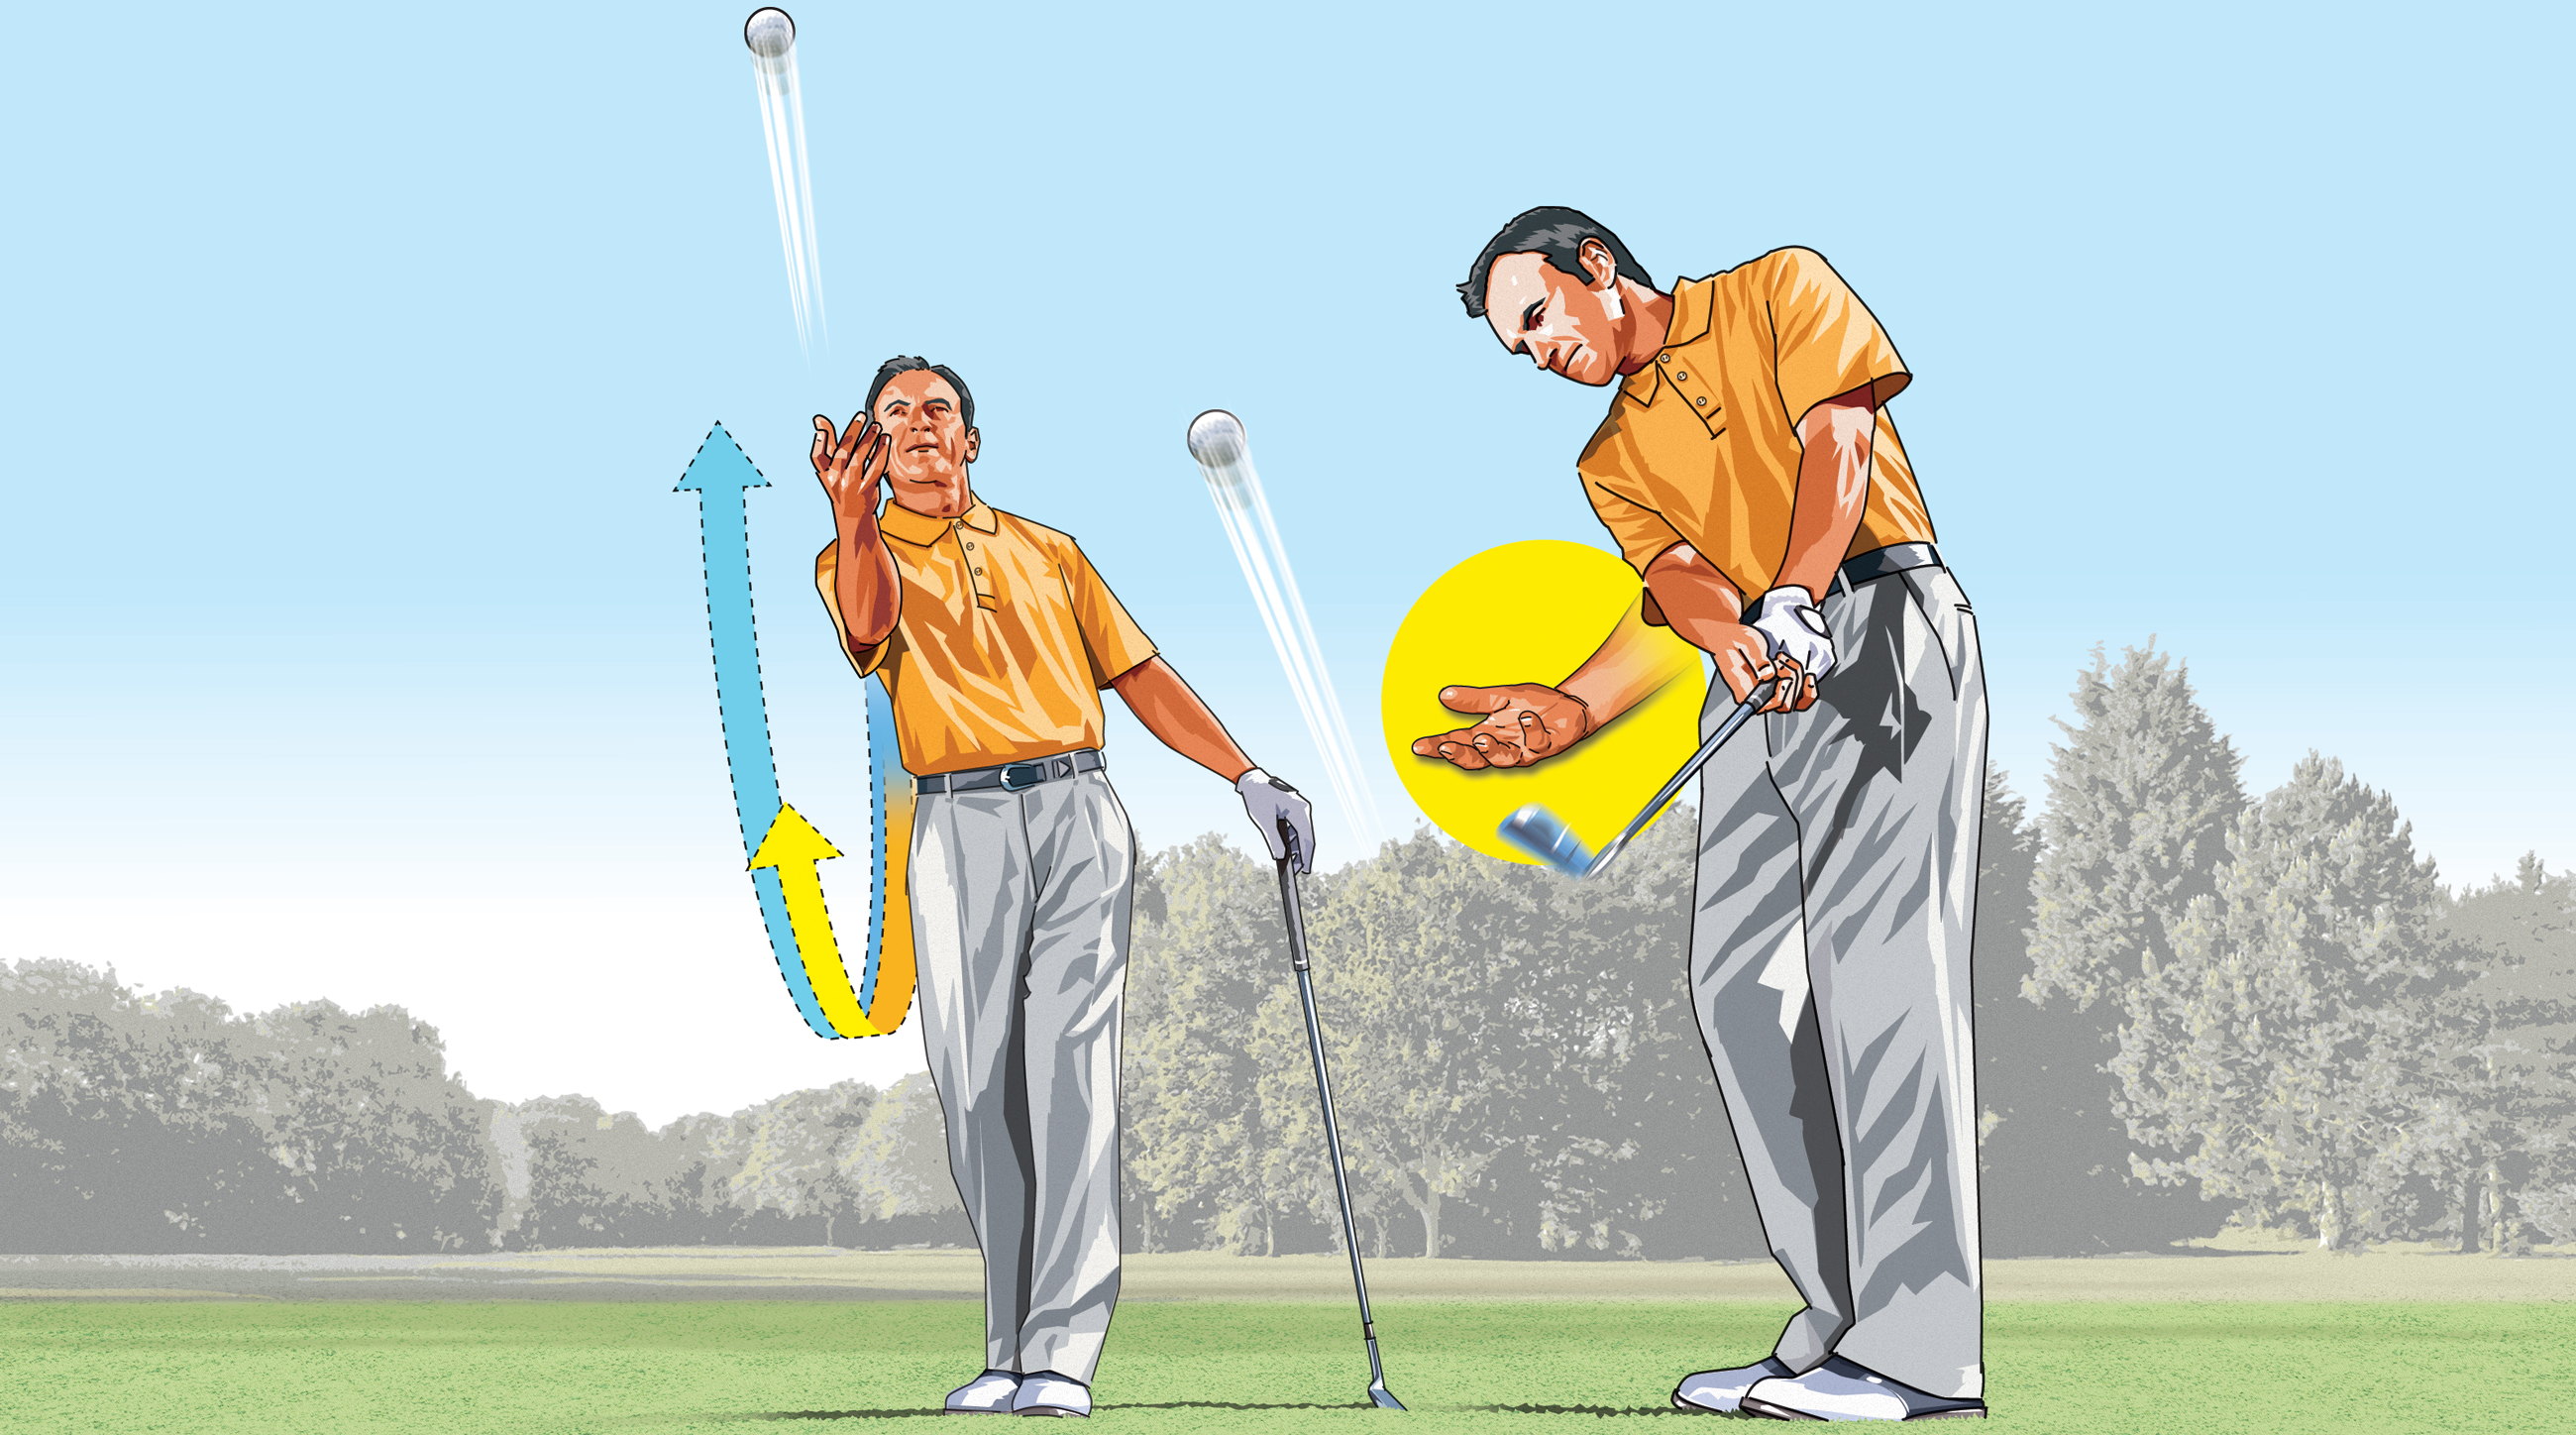 Your hand-eye coordination will help you toss a ball close to the hole. Think of that as you work to pitch it close.